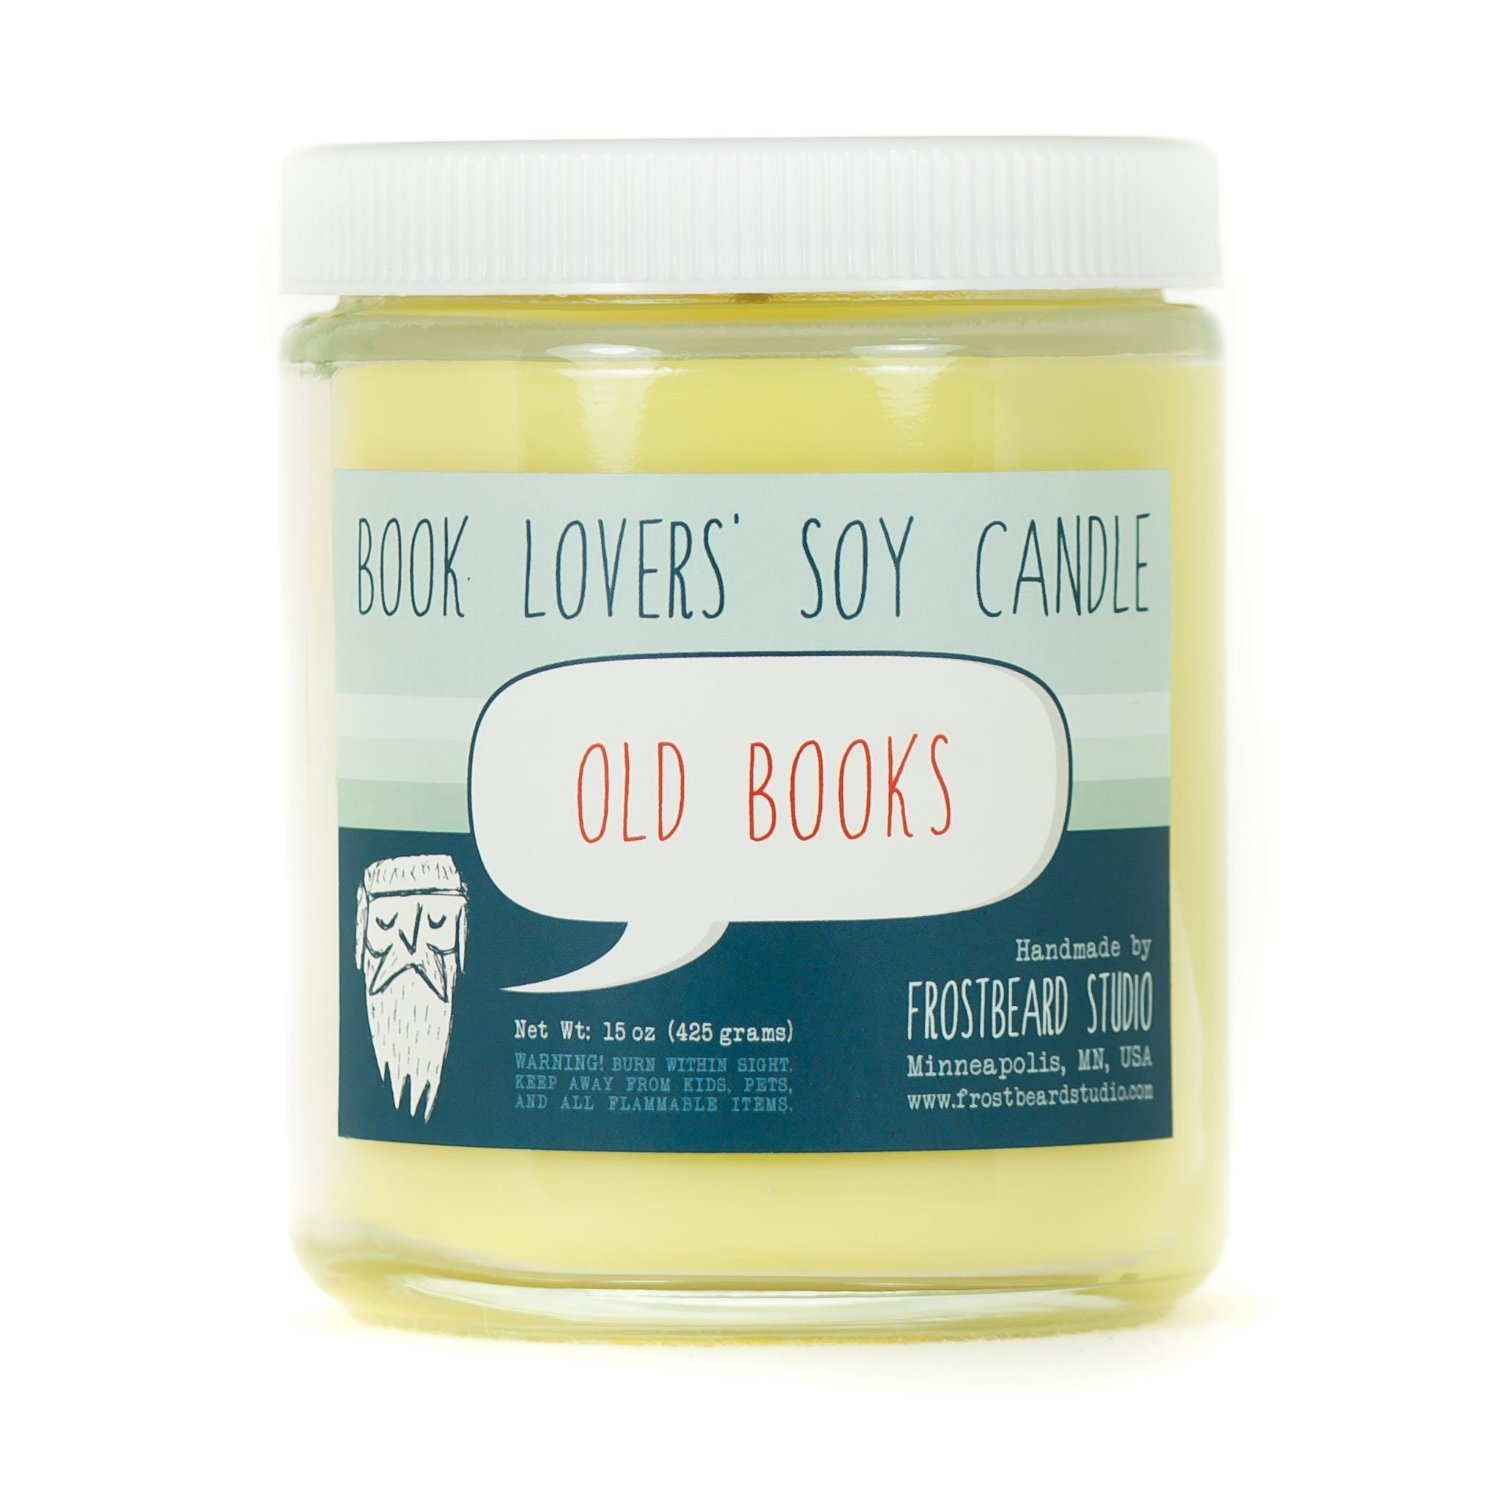 Old Books - Book Lovers' Soy Candle